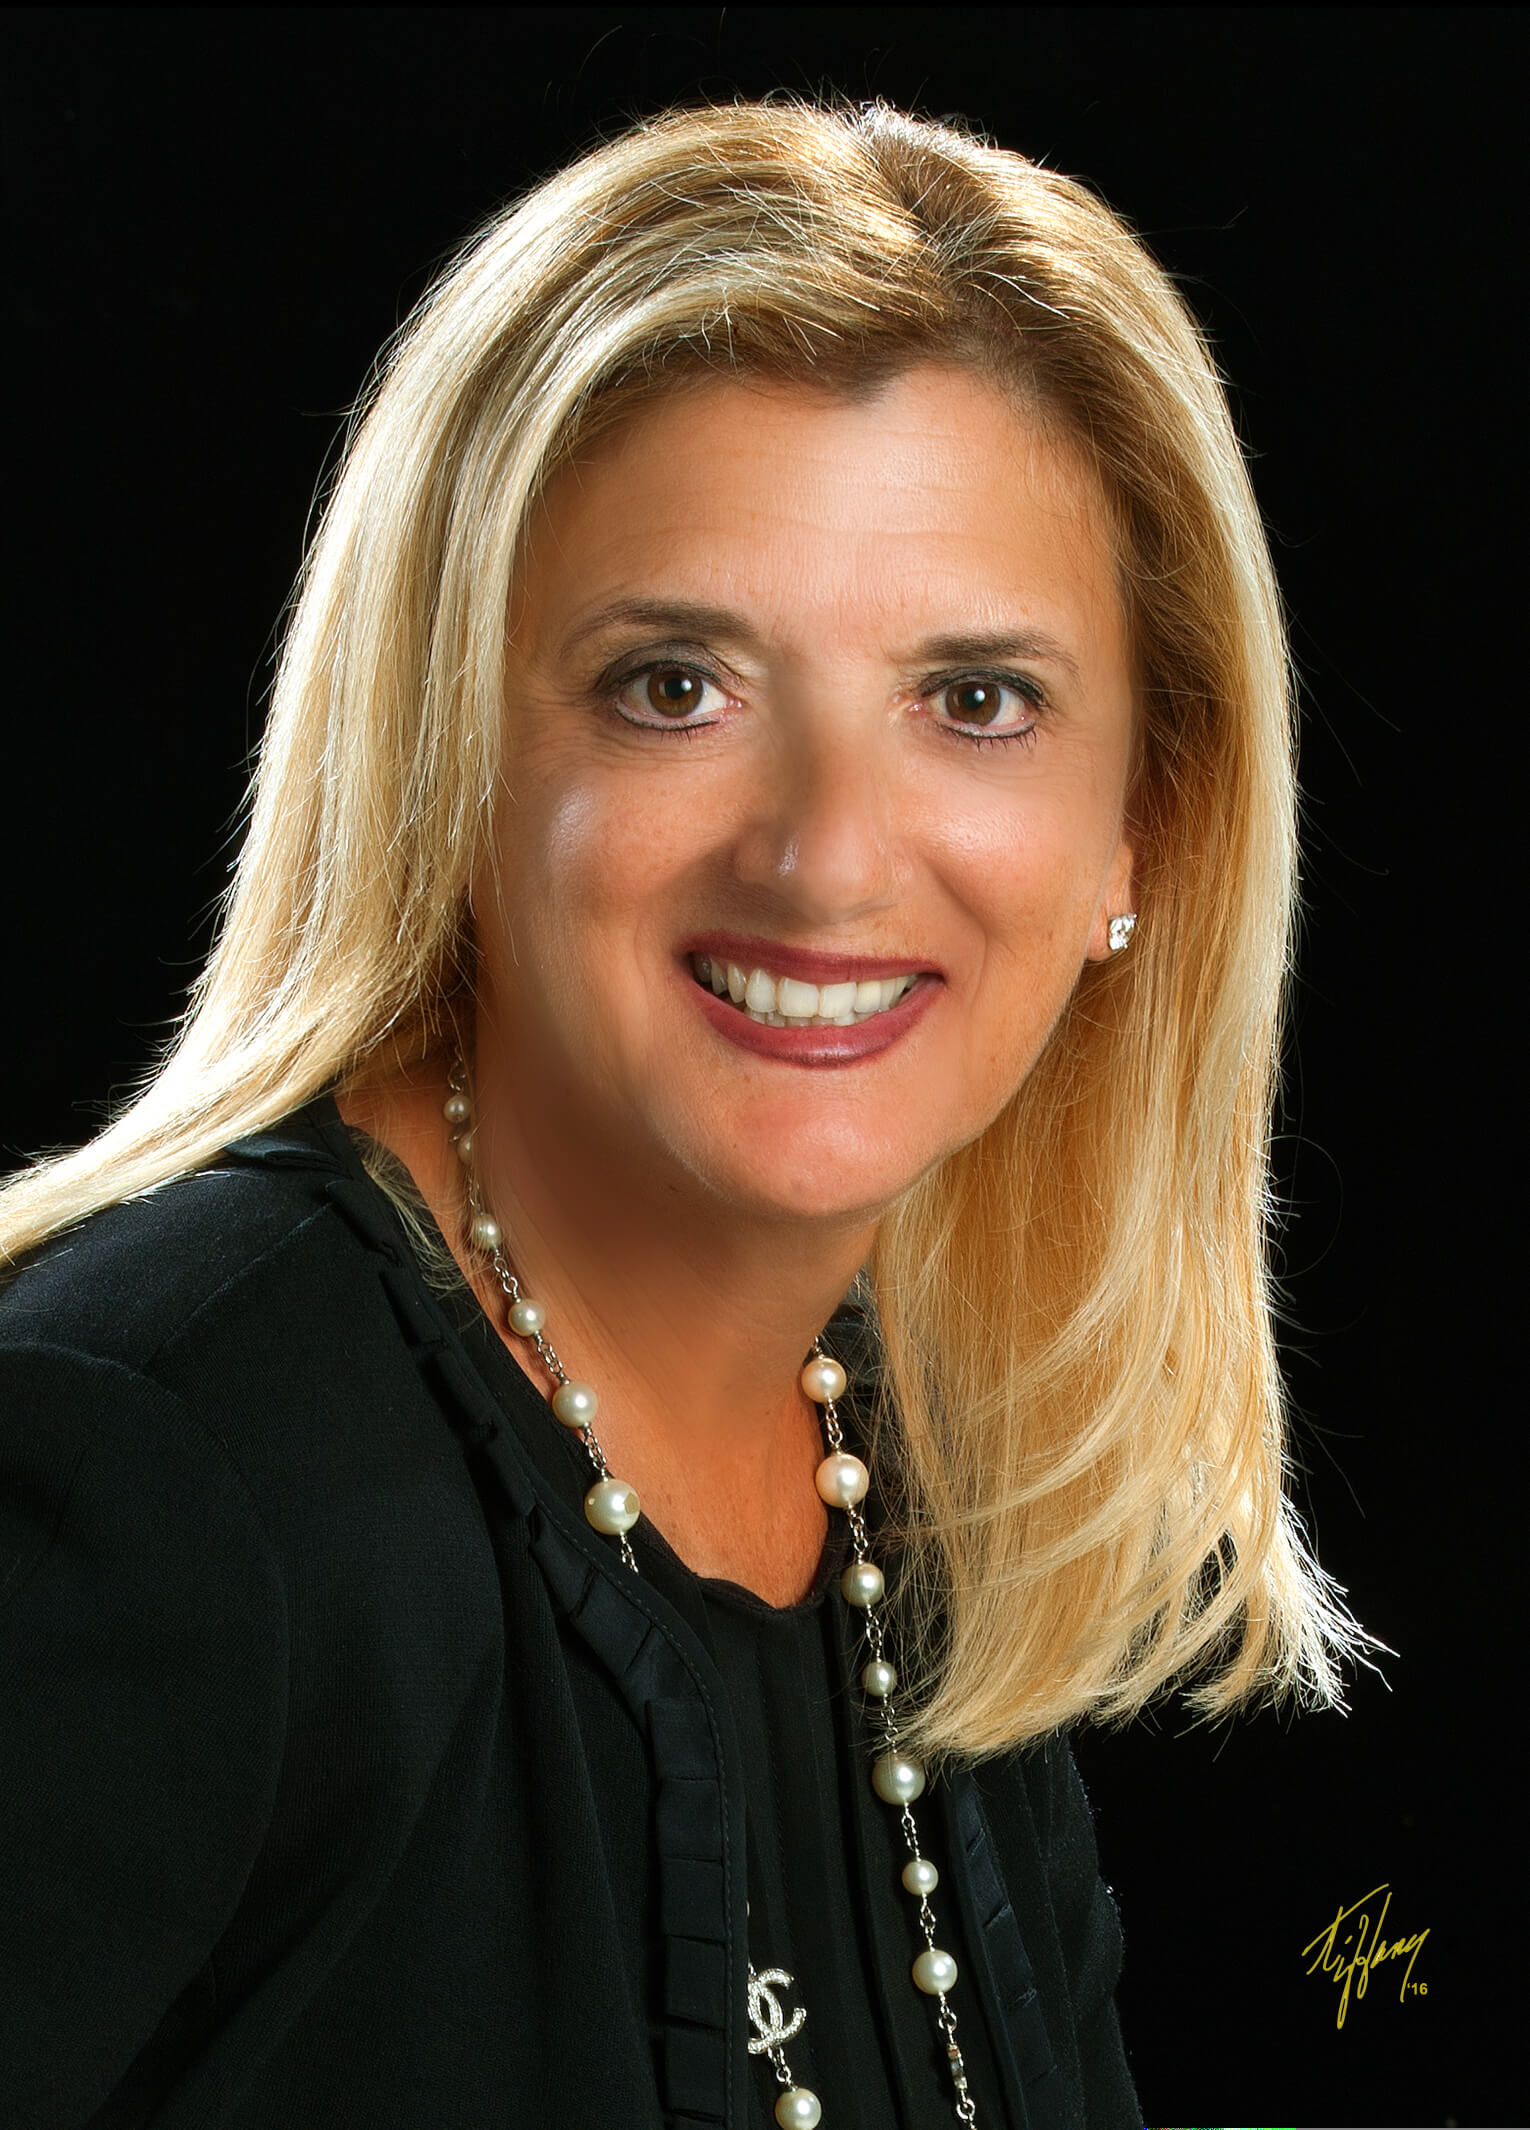 Beverly Capasso is the new CEO of Broward Health